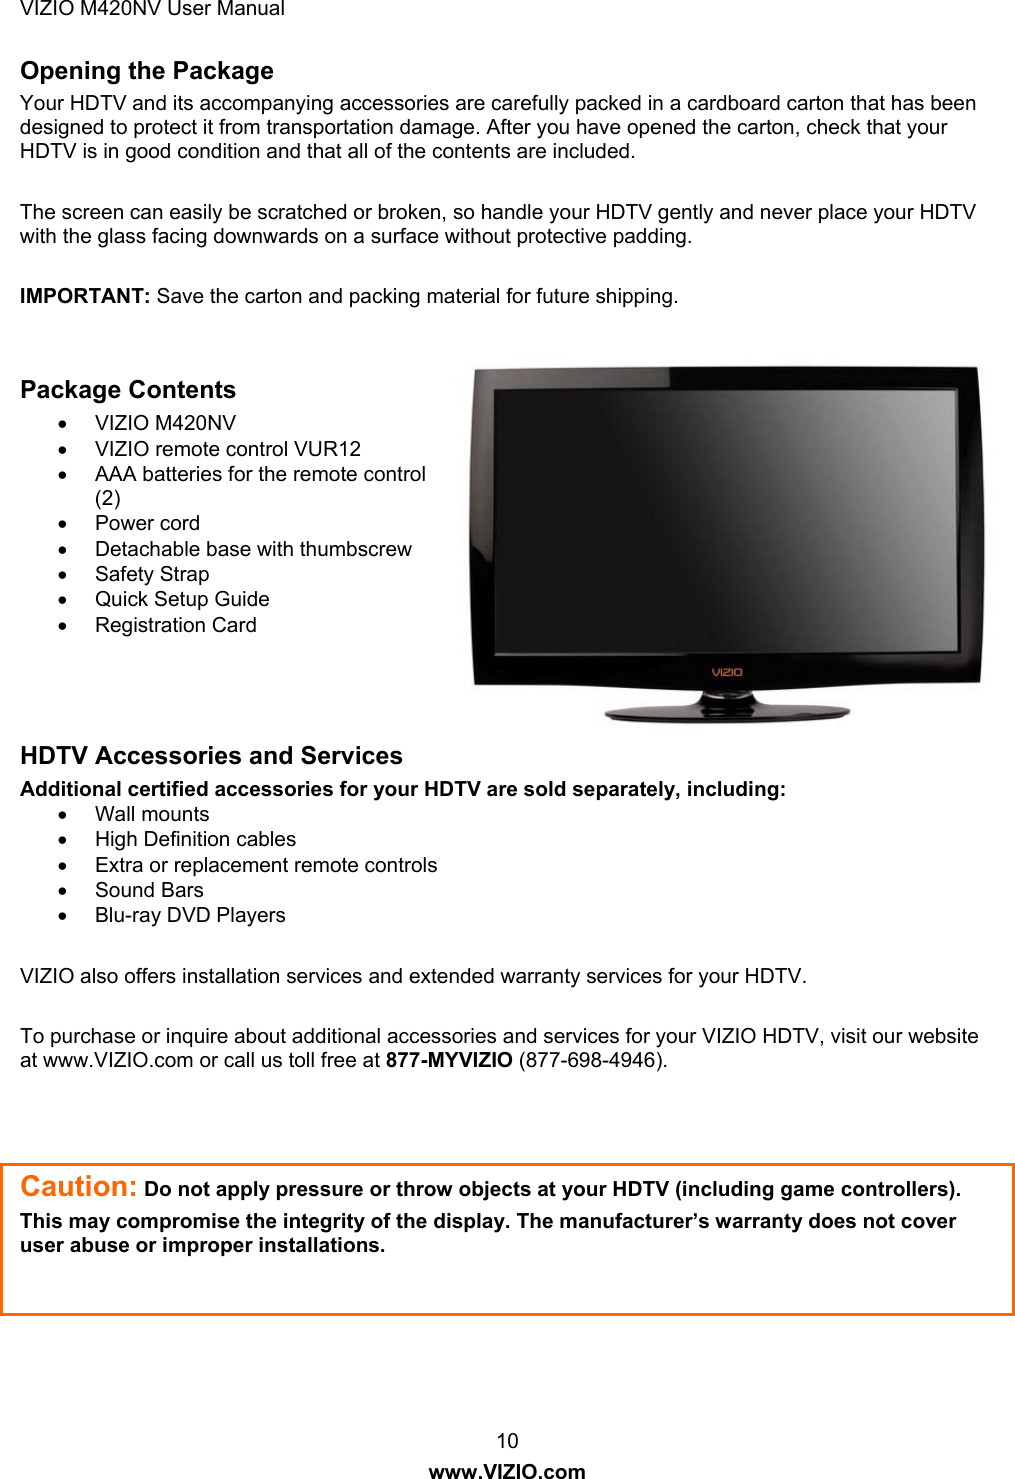 Vizio Projection Television M420Nv Users Manual 10 01135 User Manual_2